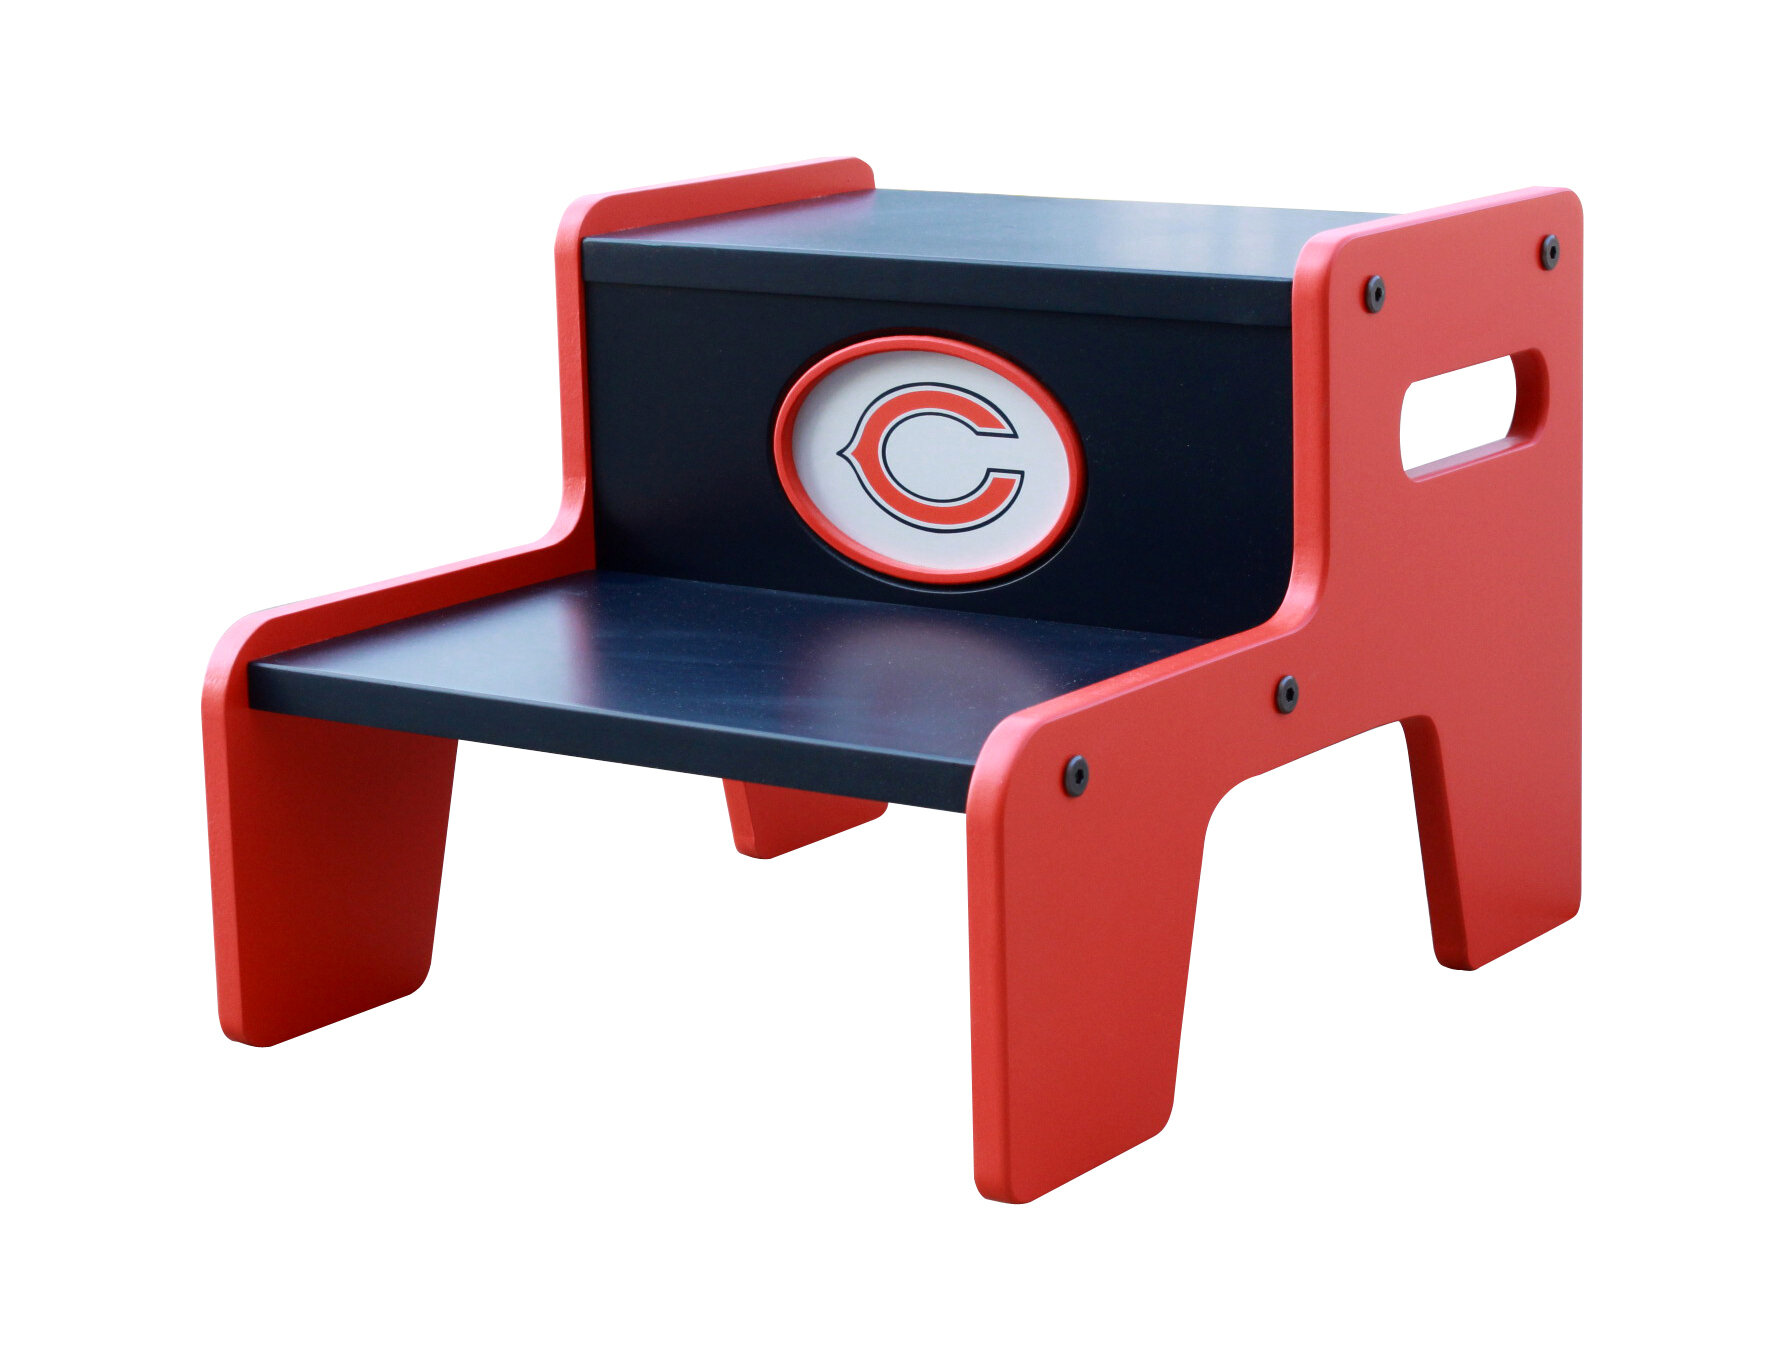 Phenomenal Nfl Step Stool Inzonedesignstudio Interior Chair Design Inzonedesignstudiocom